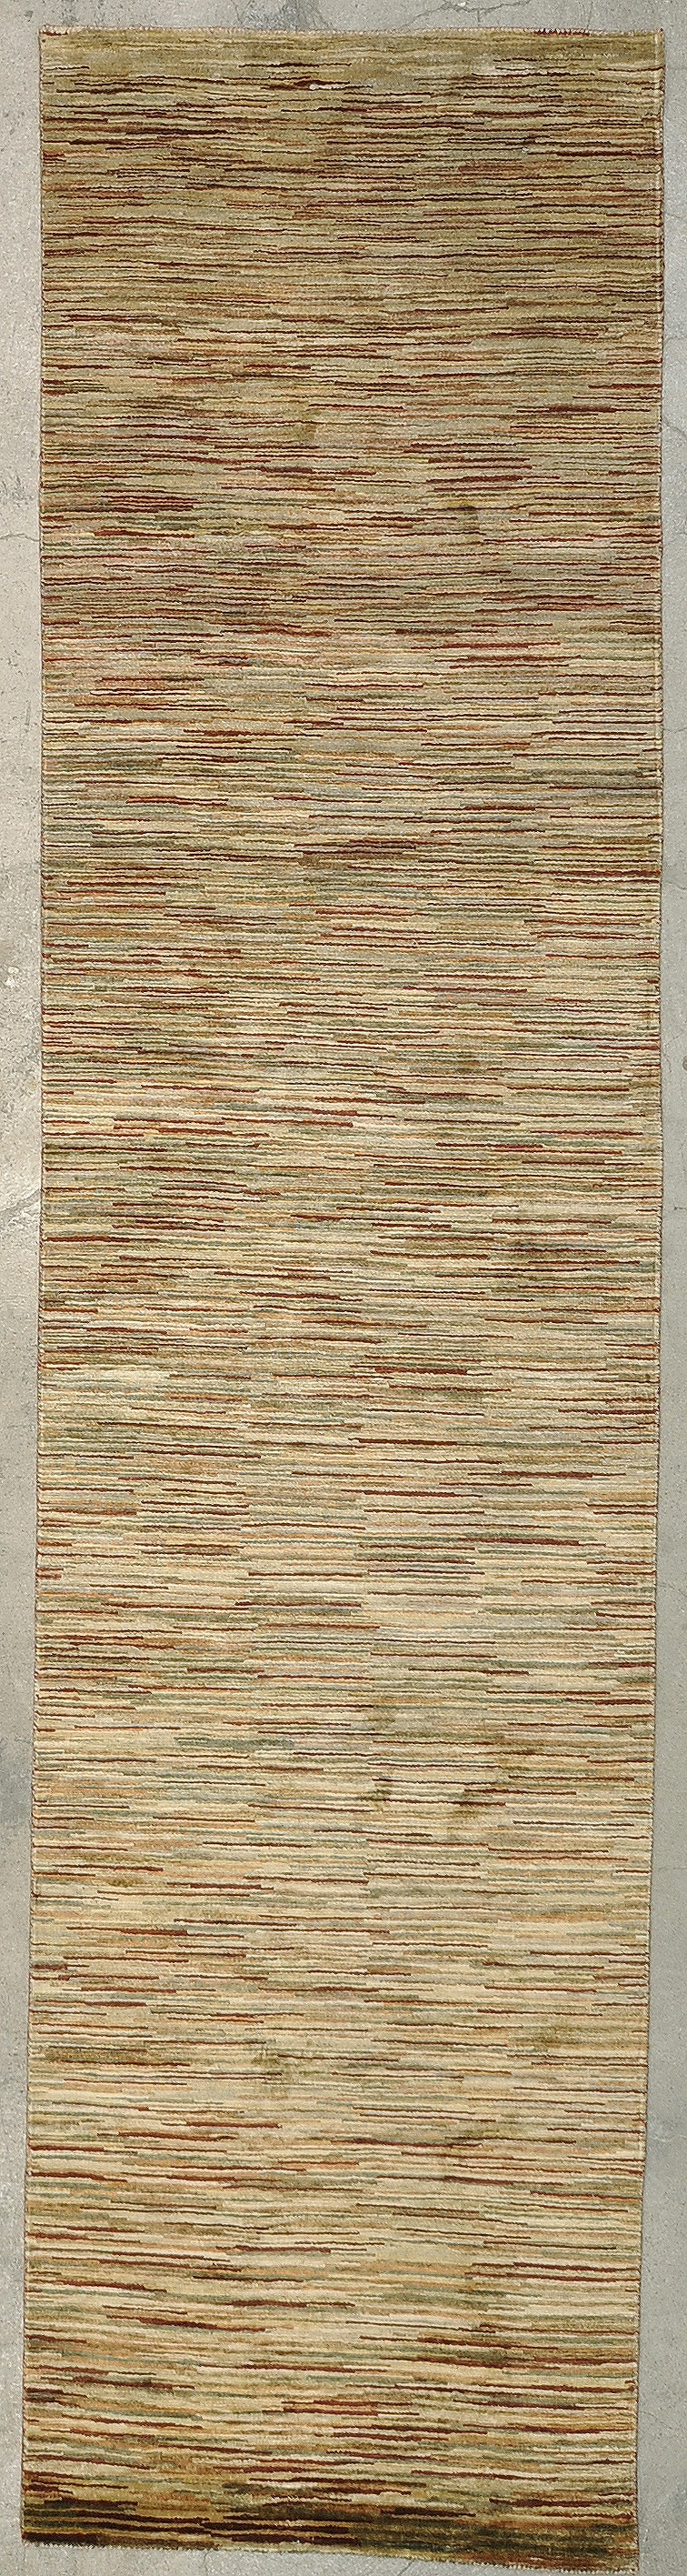 Ziegler & Co Modern rugs and more oriental carpet 33826-